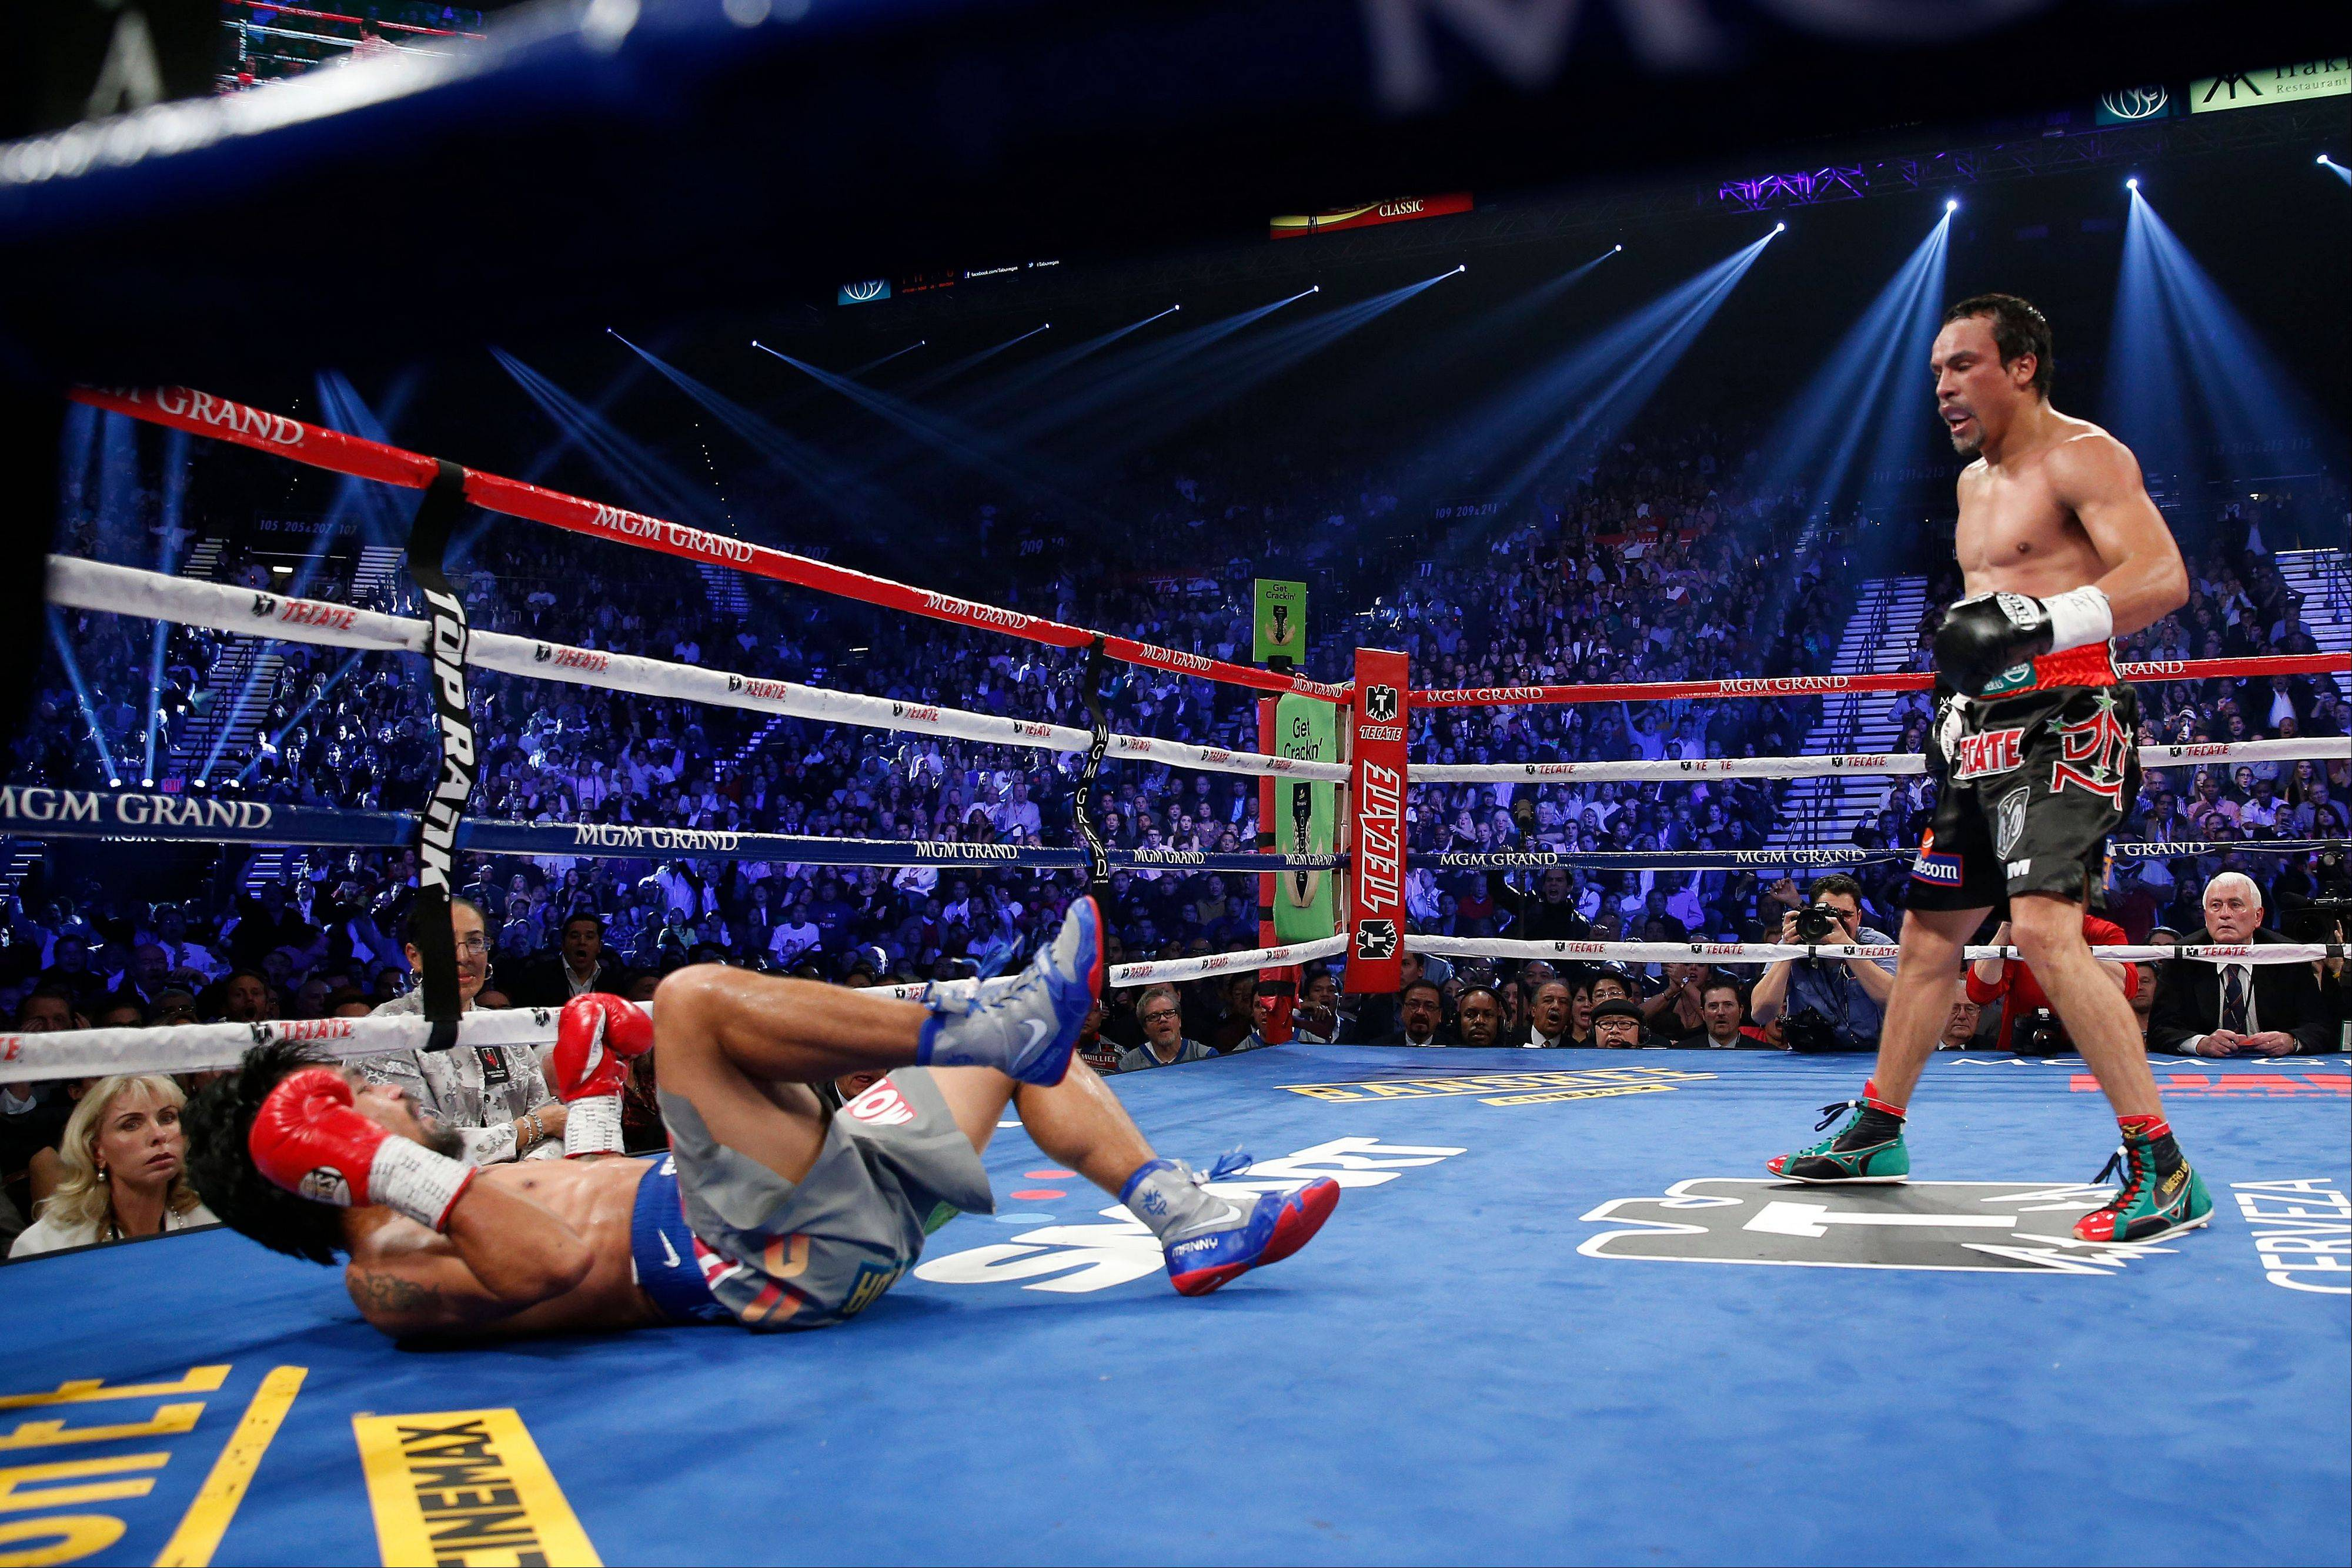 Juan Manuel Marquez, left, knocks down Manny Pacquiao in the third round.